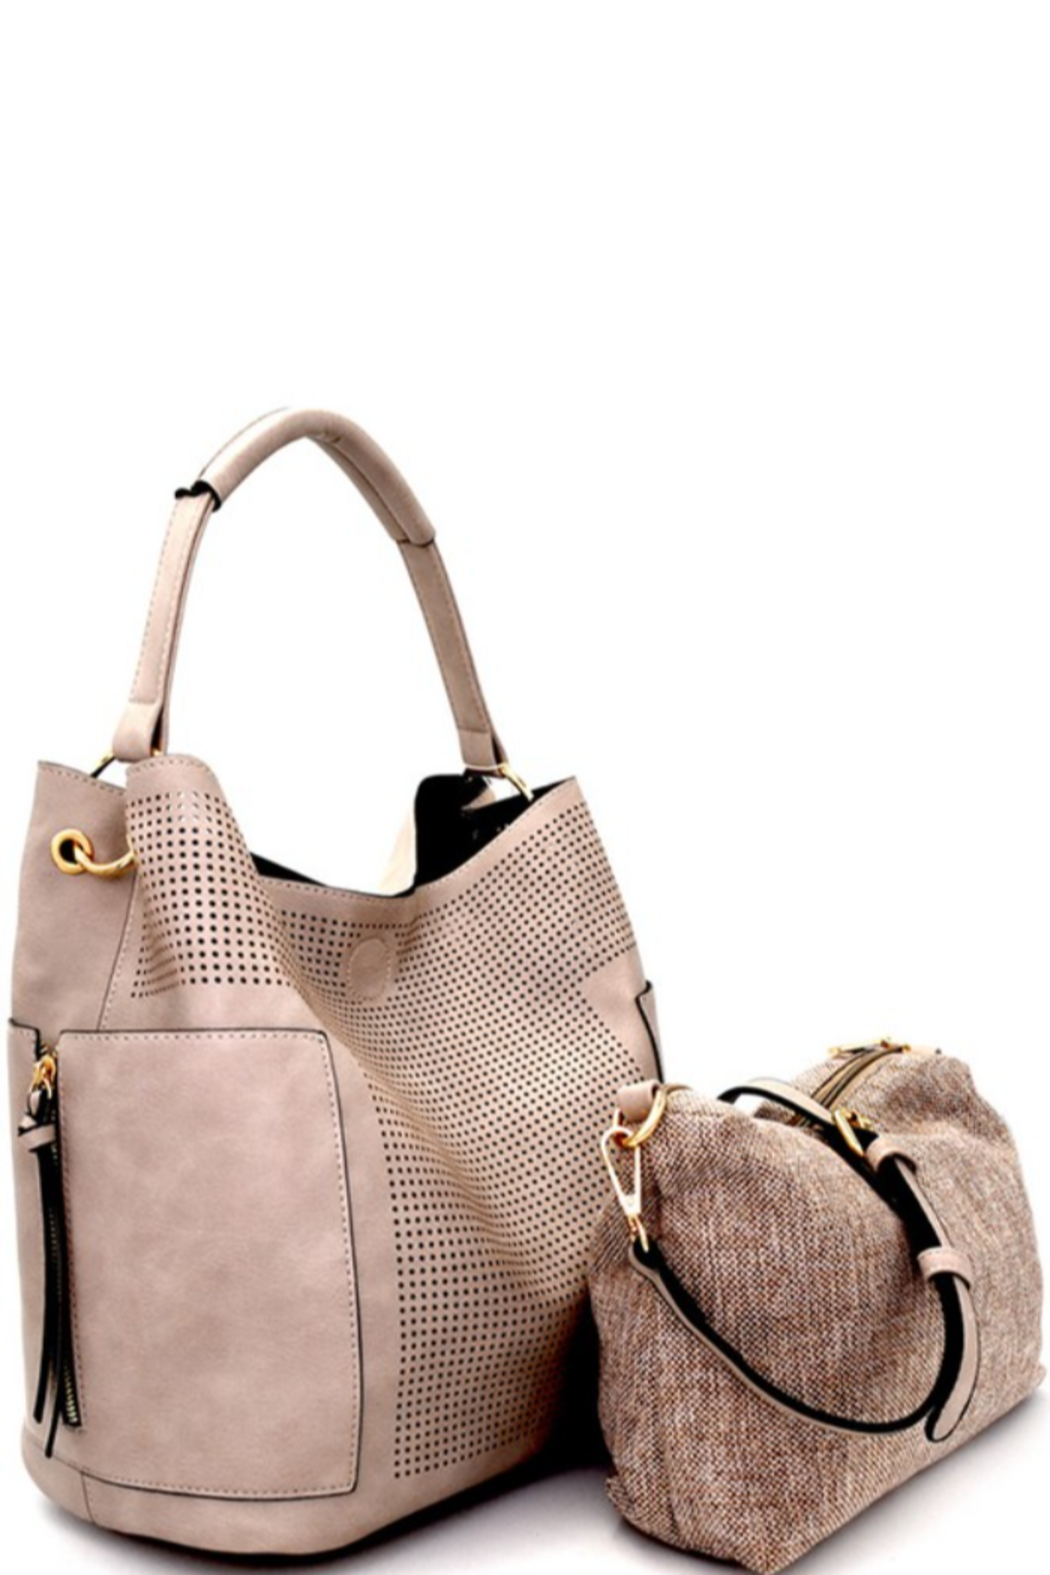 Bag Boutique Connie 2-in-1 Hobo Bag Set - Main Image